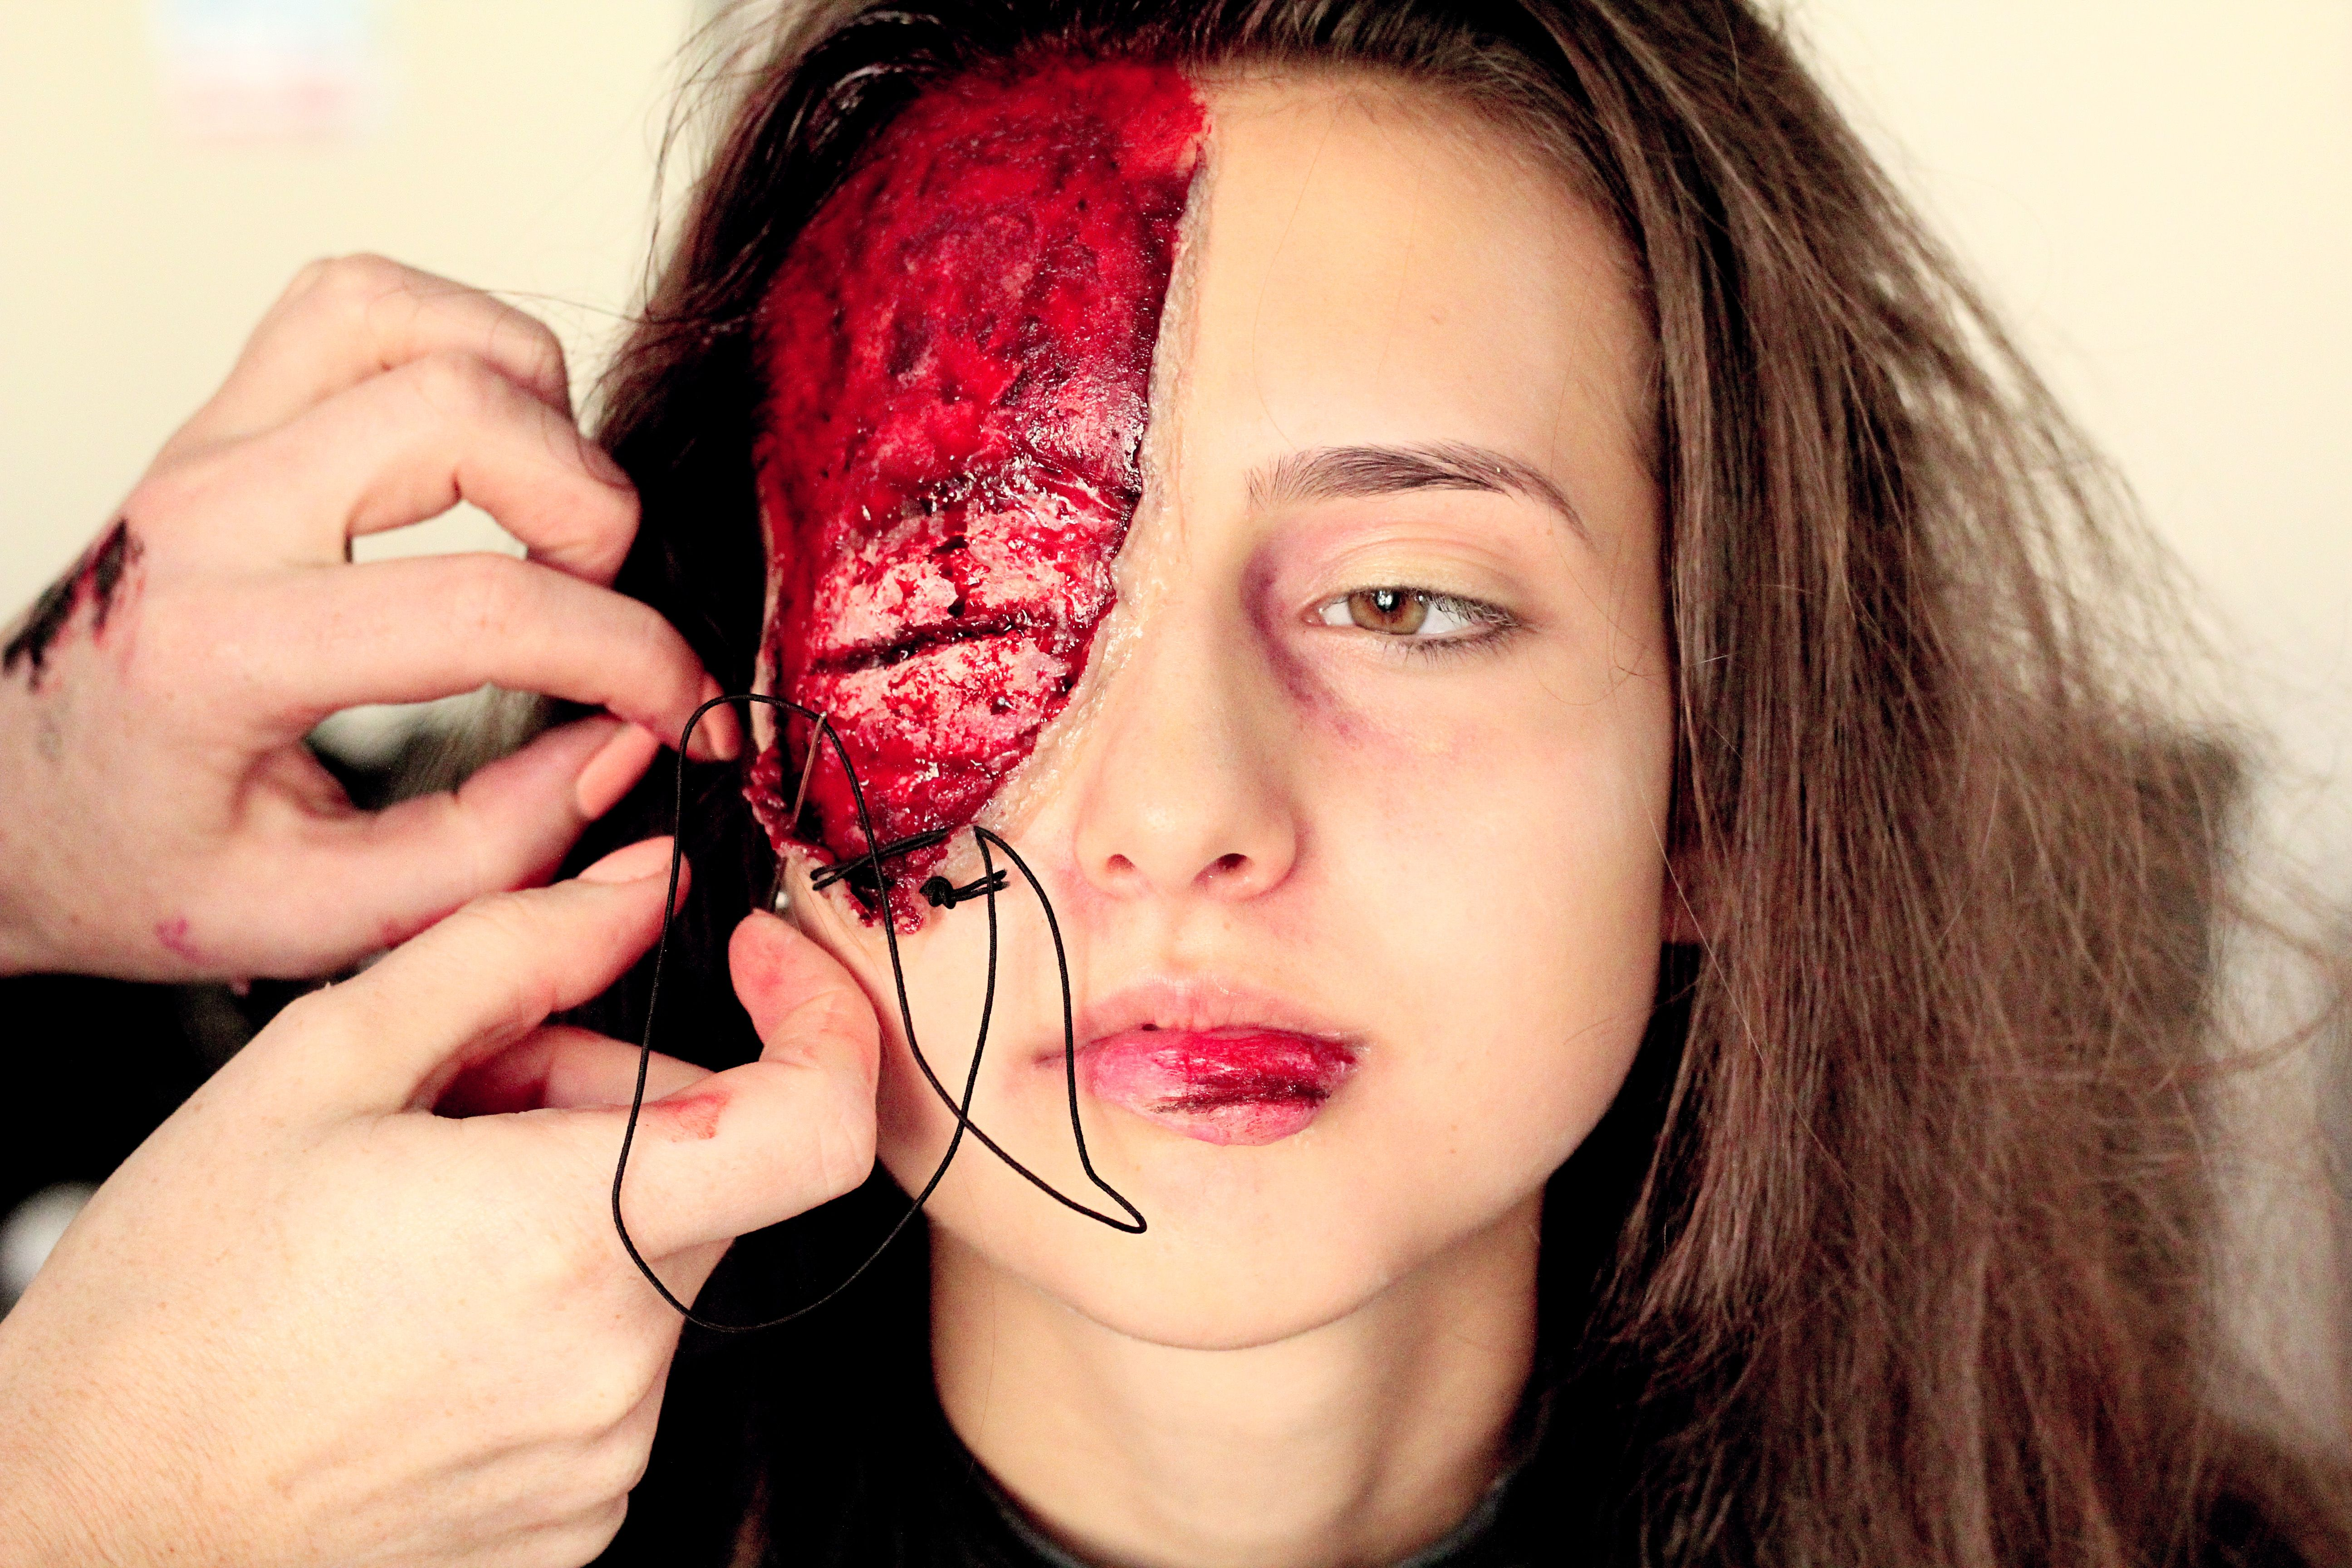 Special effects makeup look created for a Halloween makeup